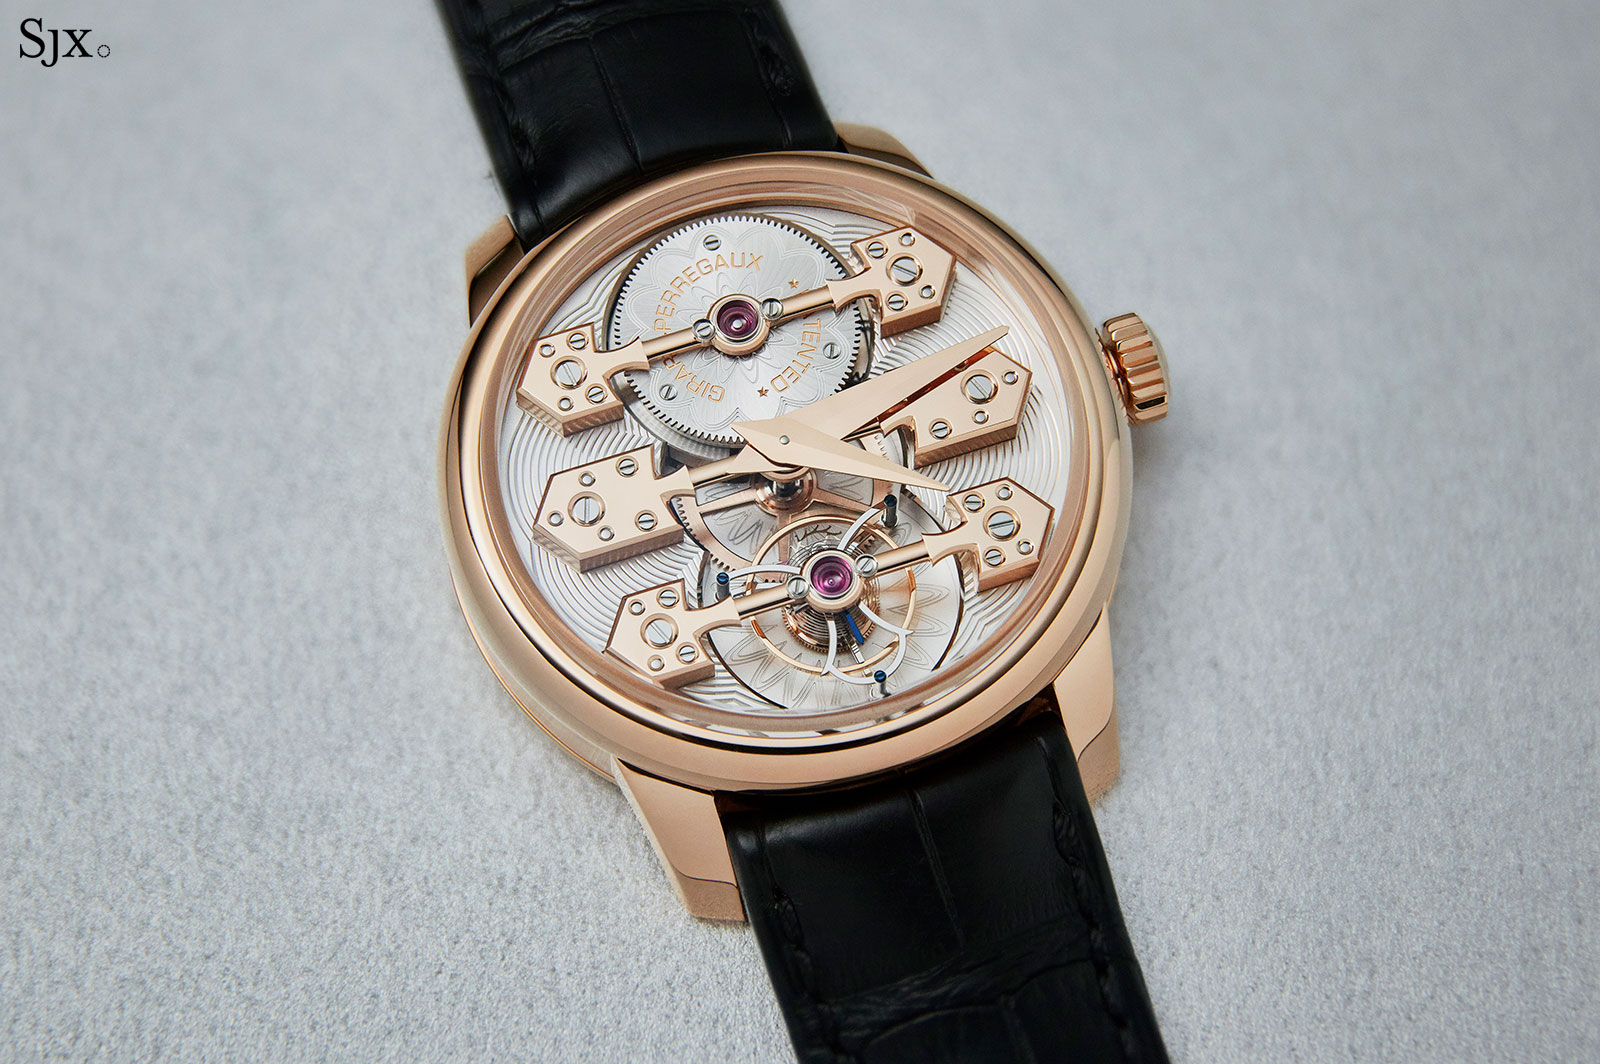 Girard Perregaux La Esmeralda Tourbillon watch